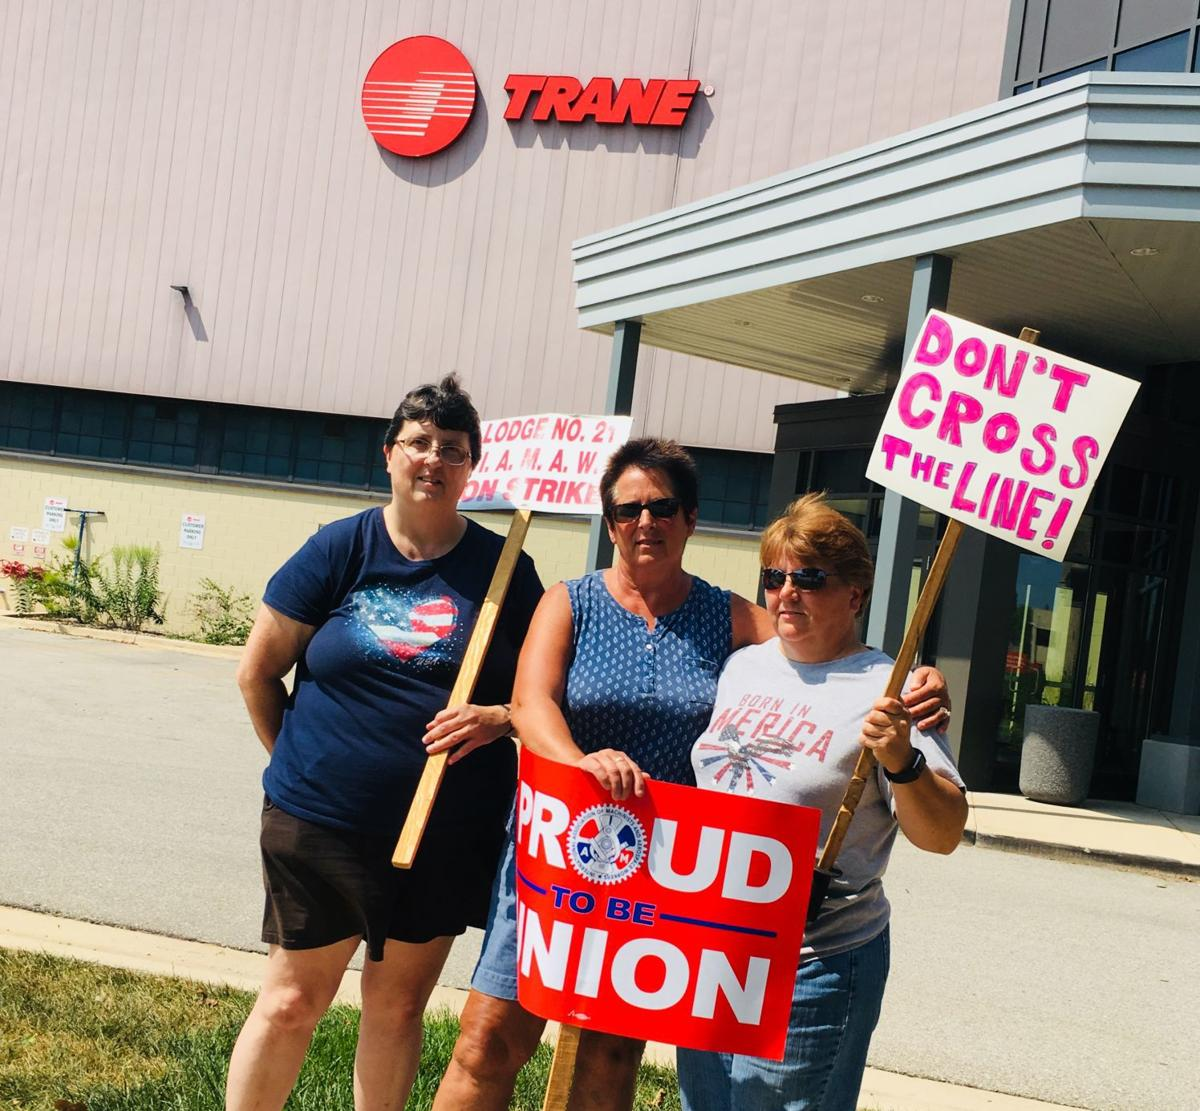 Trane strikers cite pay, forced overtime as top issues as they picket  outside La Crosse employer